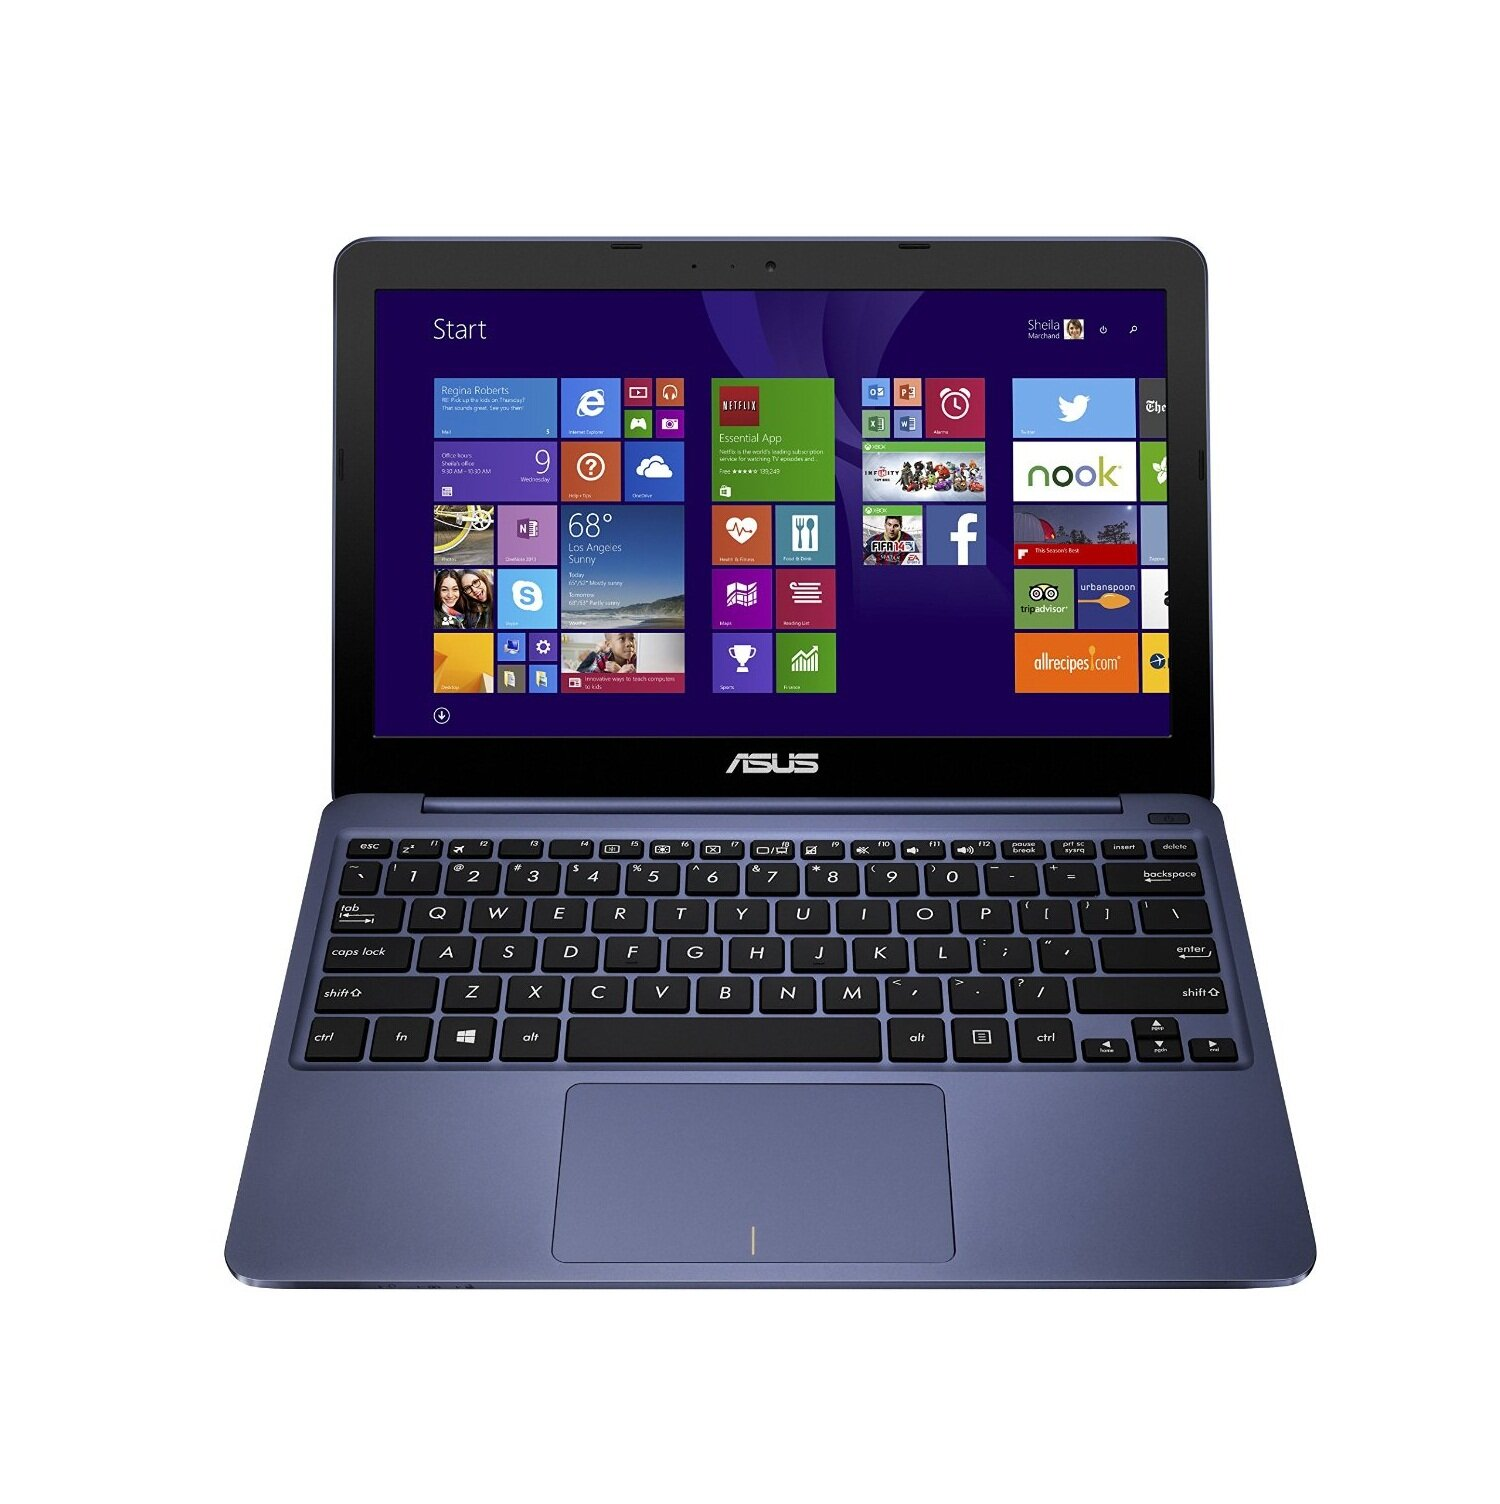 Laptop Asus X205TA-BING FD027BS - Atom, 2Gb RAM, 32Gb SSD, Intel HD Graphics, 11.6Inch